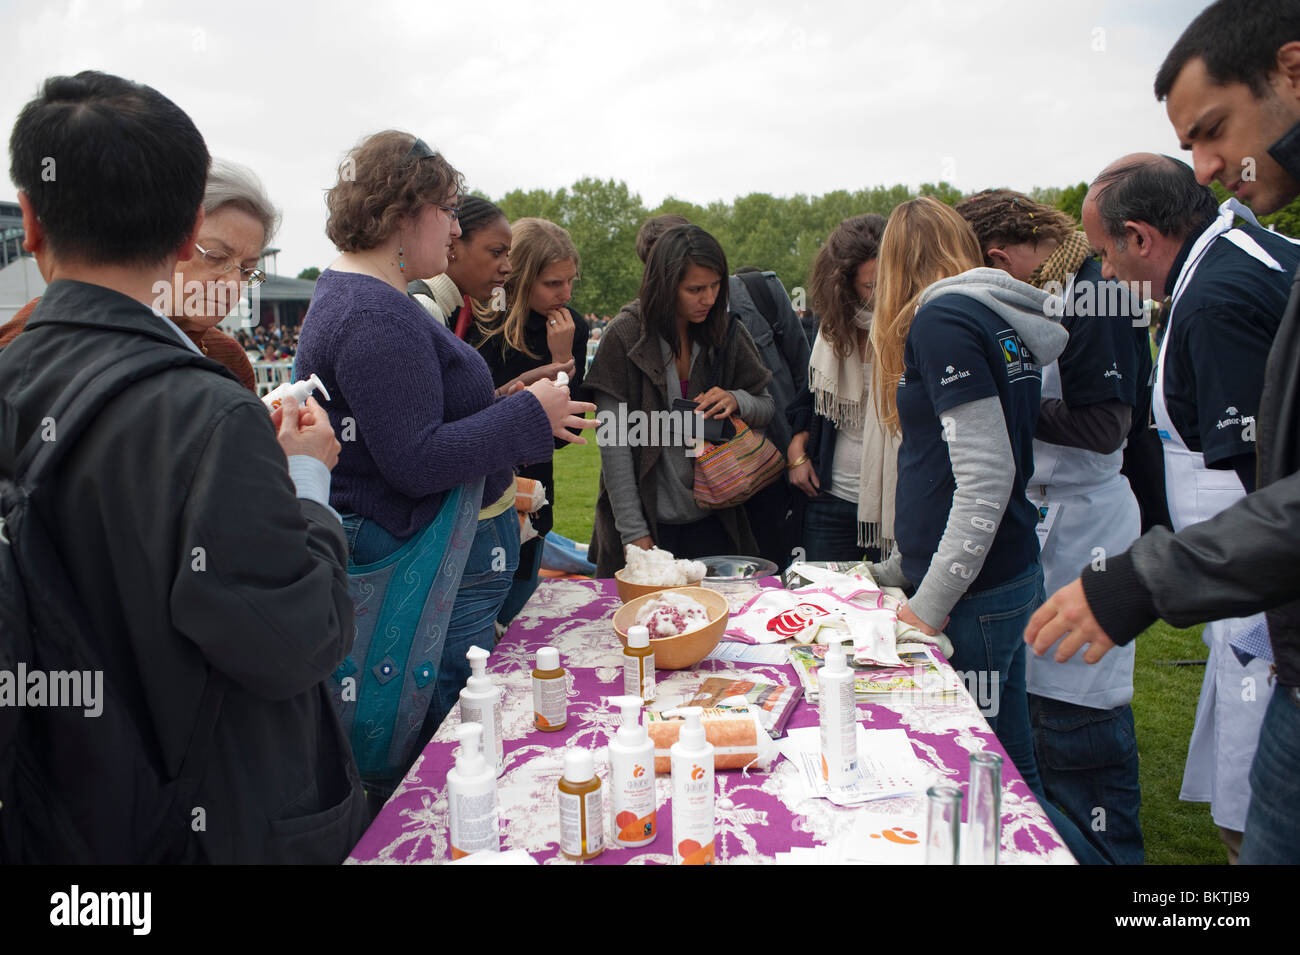 Celebration of World 'Fair Trade' Day, with People with Fair Trade Cotton Samples, on Lawn of La Villette - Stock Image